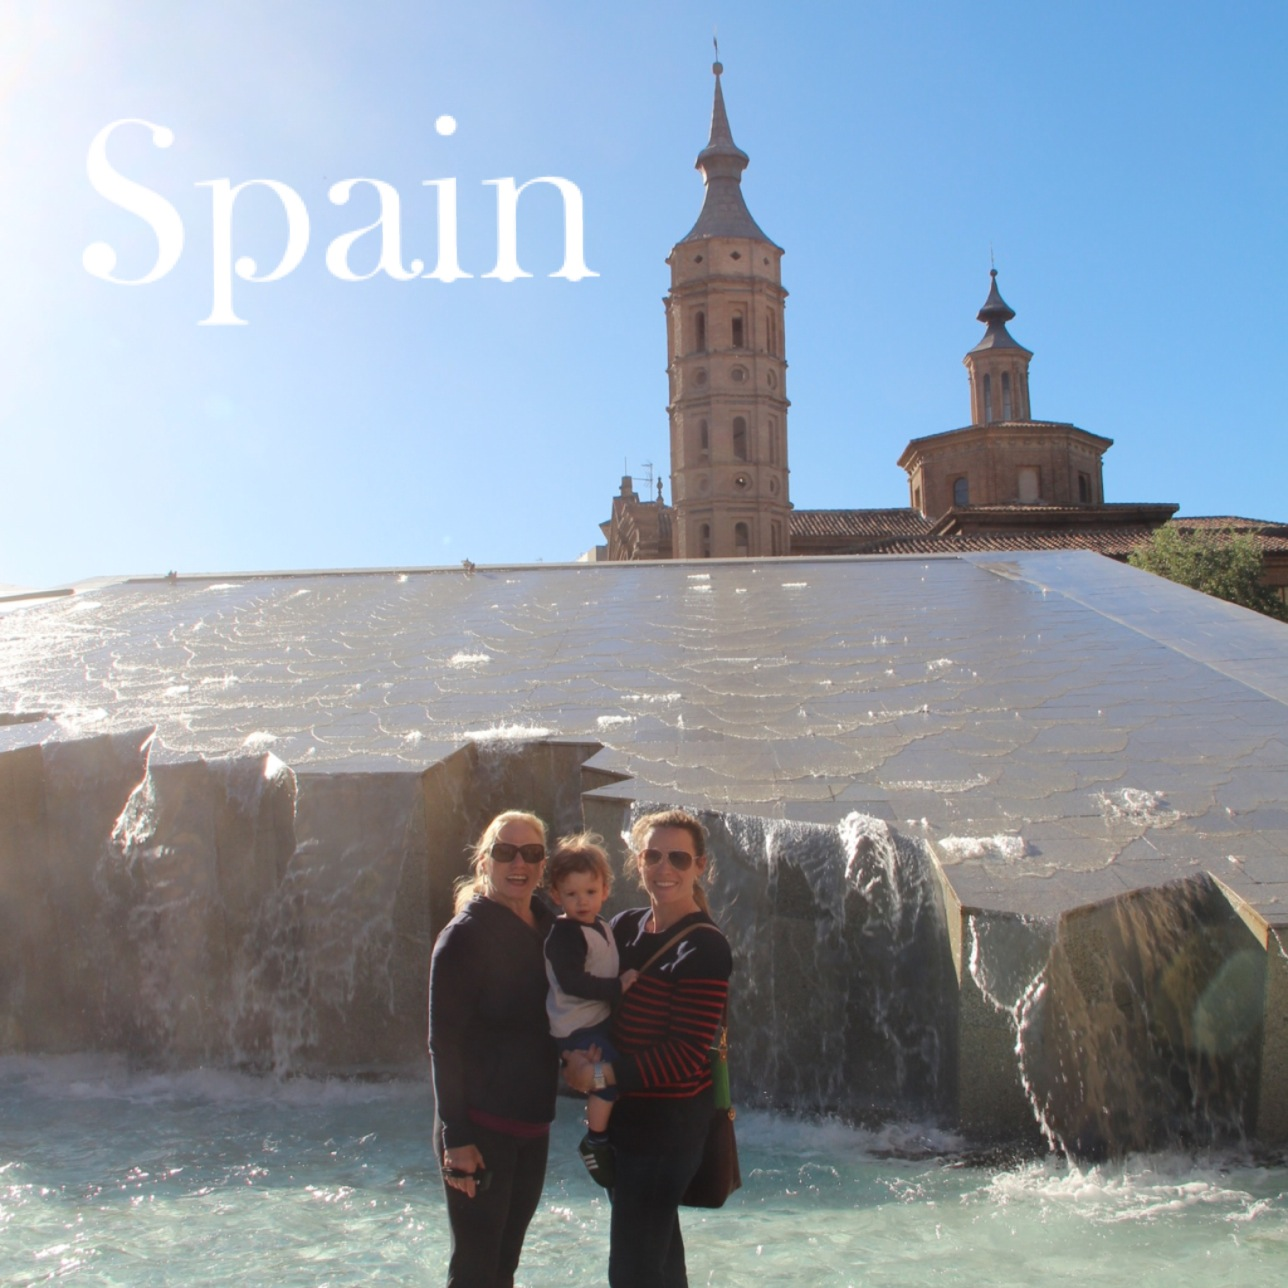 spain_waterfall_summer_family